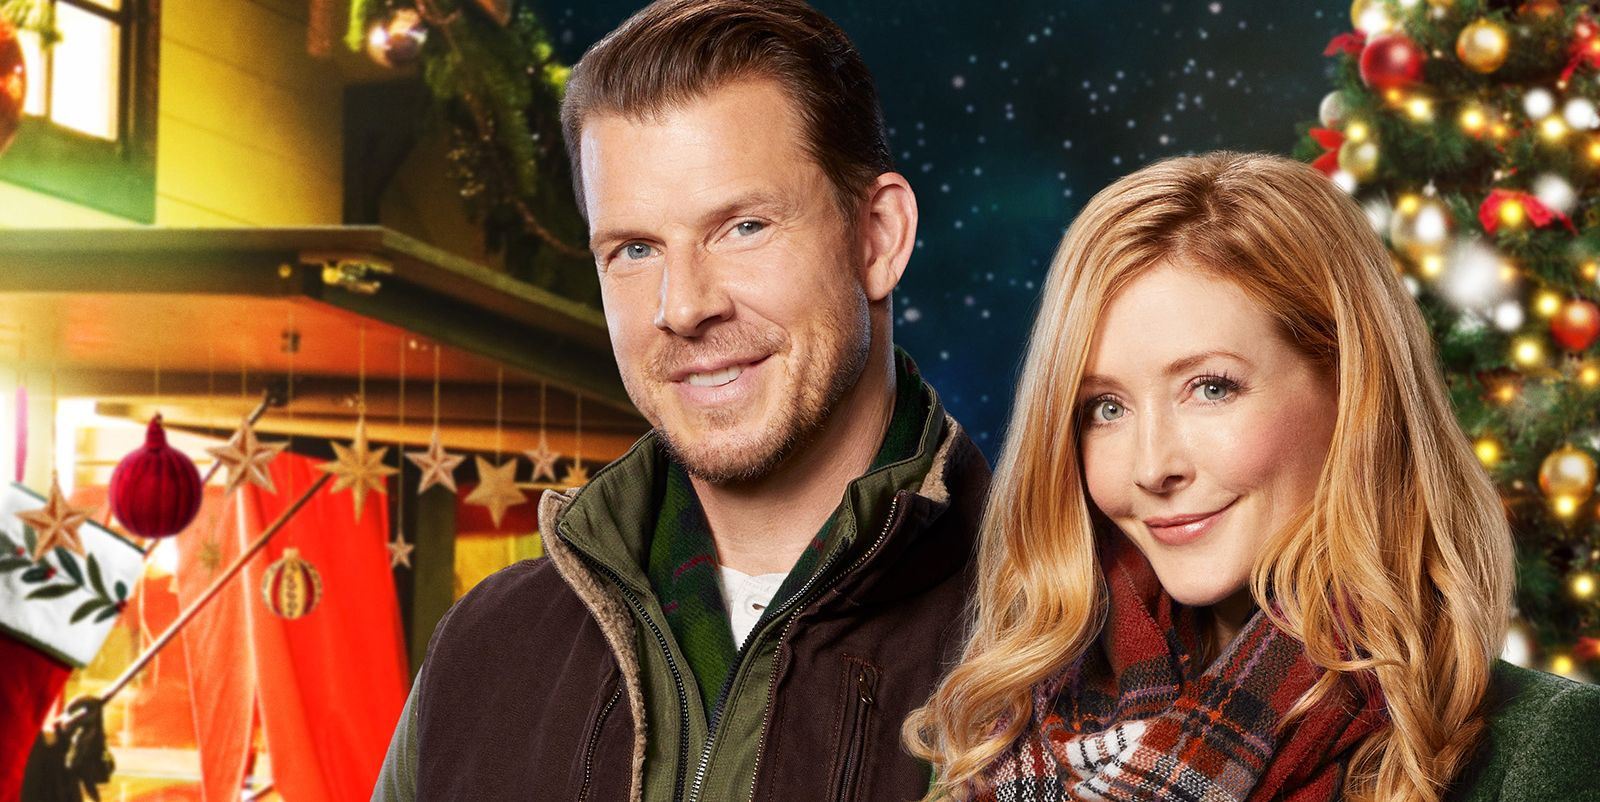 Hallmark's 'Welcome to Christmas' Movie Was Filmed in a Real-Life Winter Wonderland